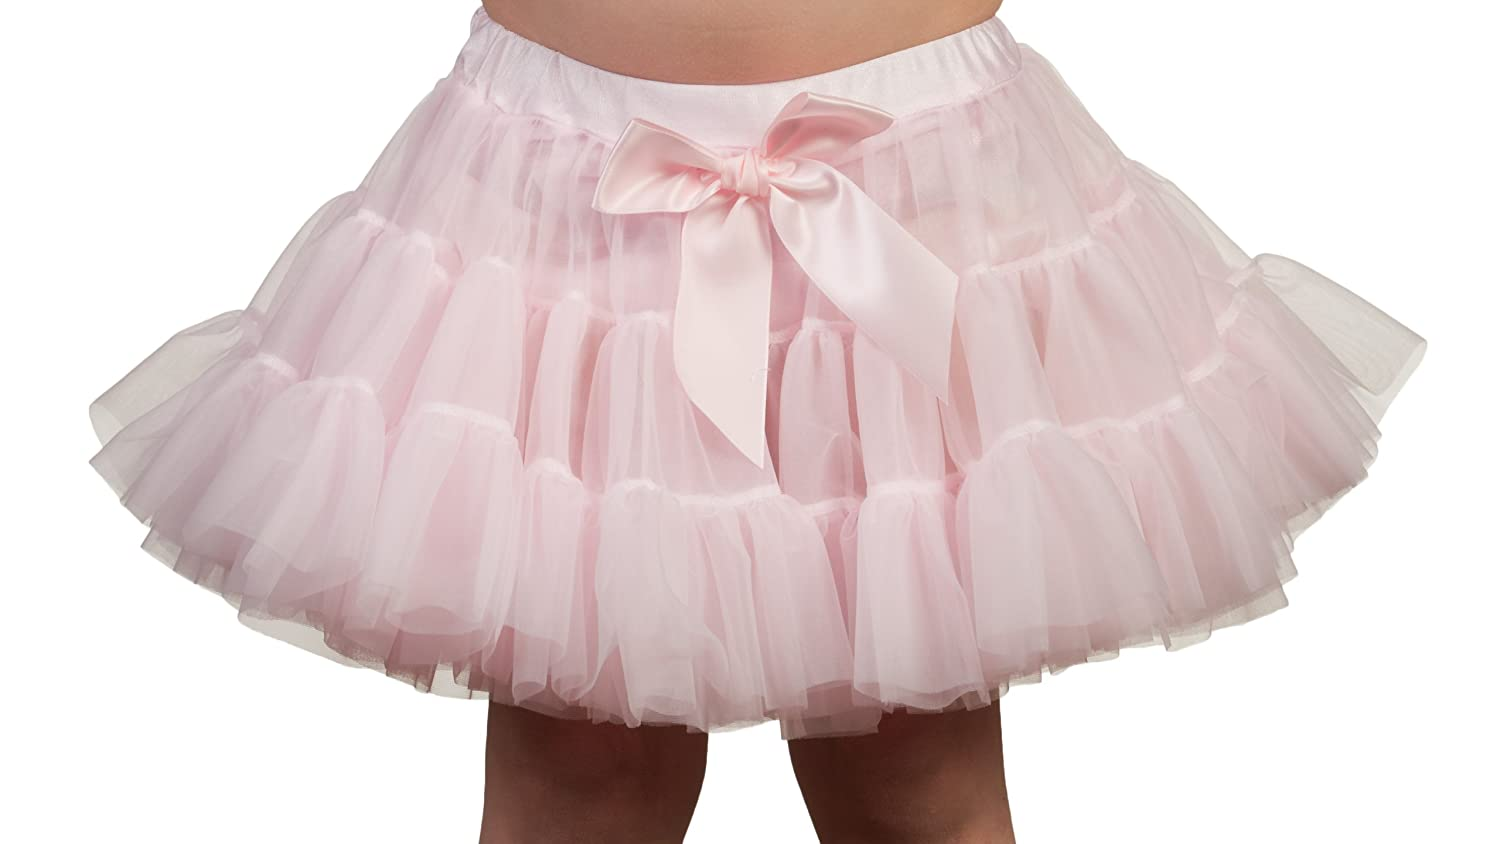 Laura Dare Baby Girls Solid Color Petti Skirt Tutu With Built-In Panties